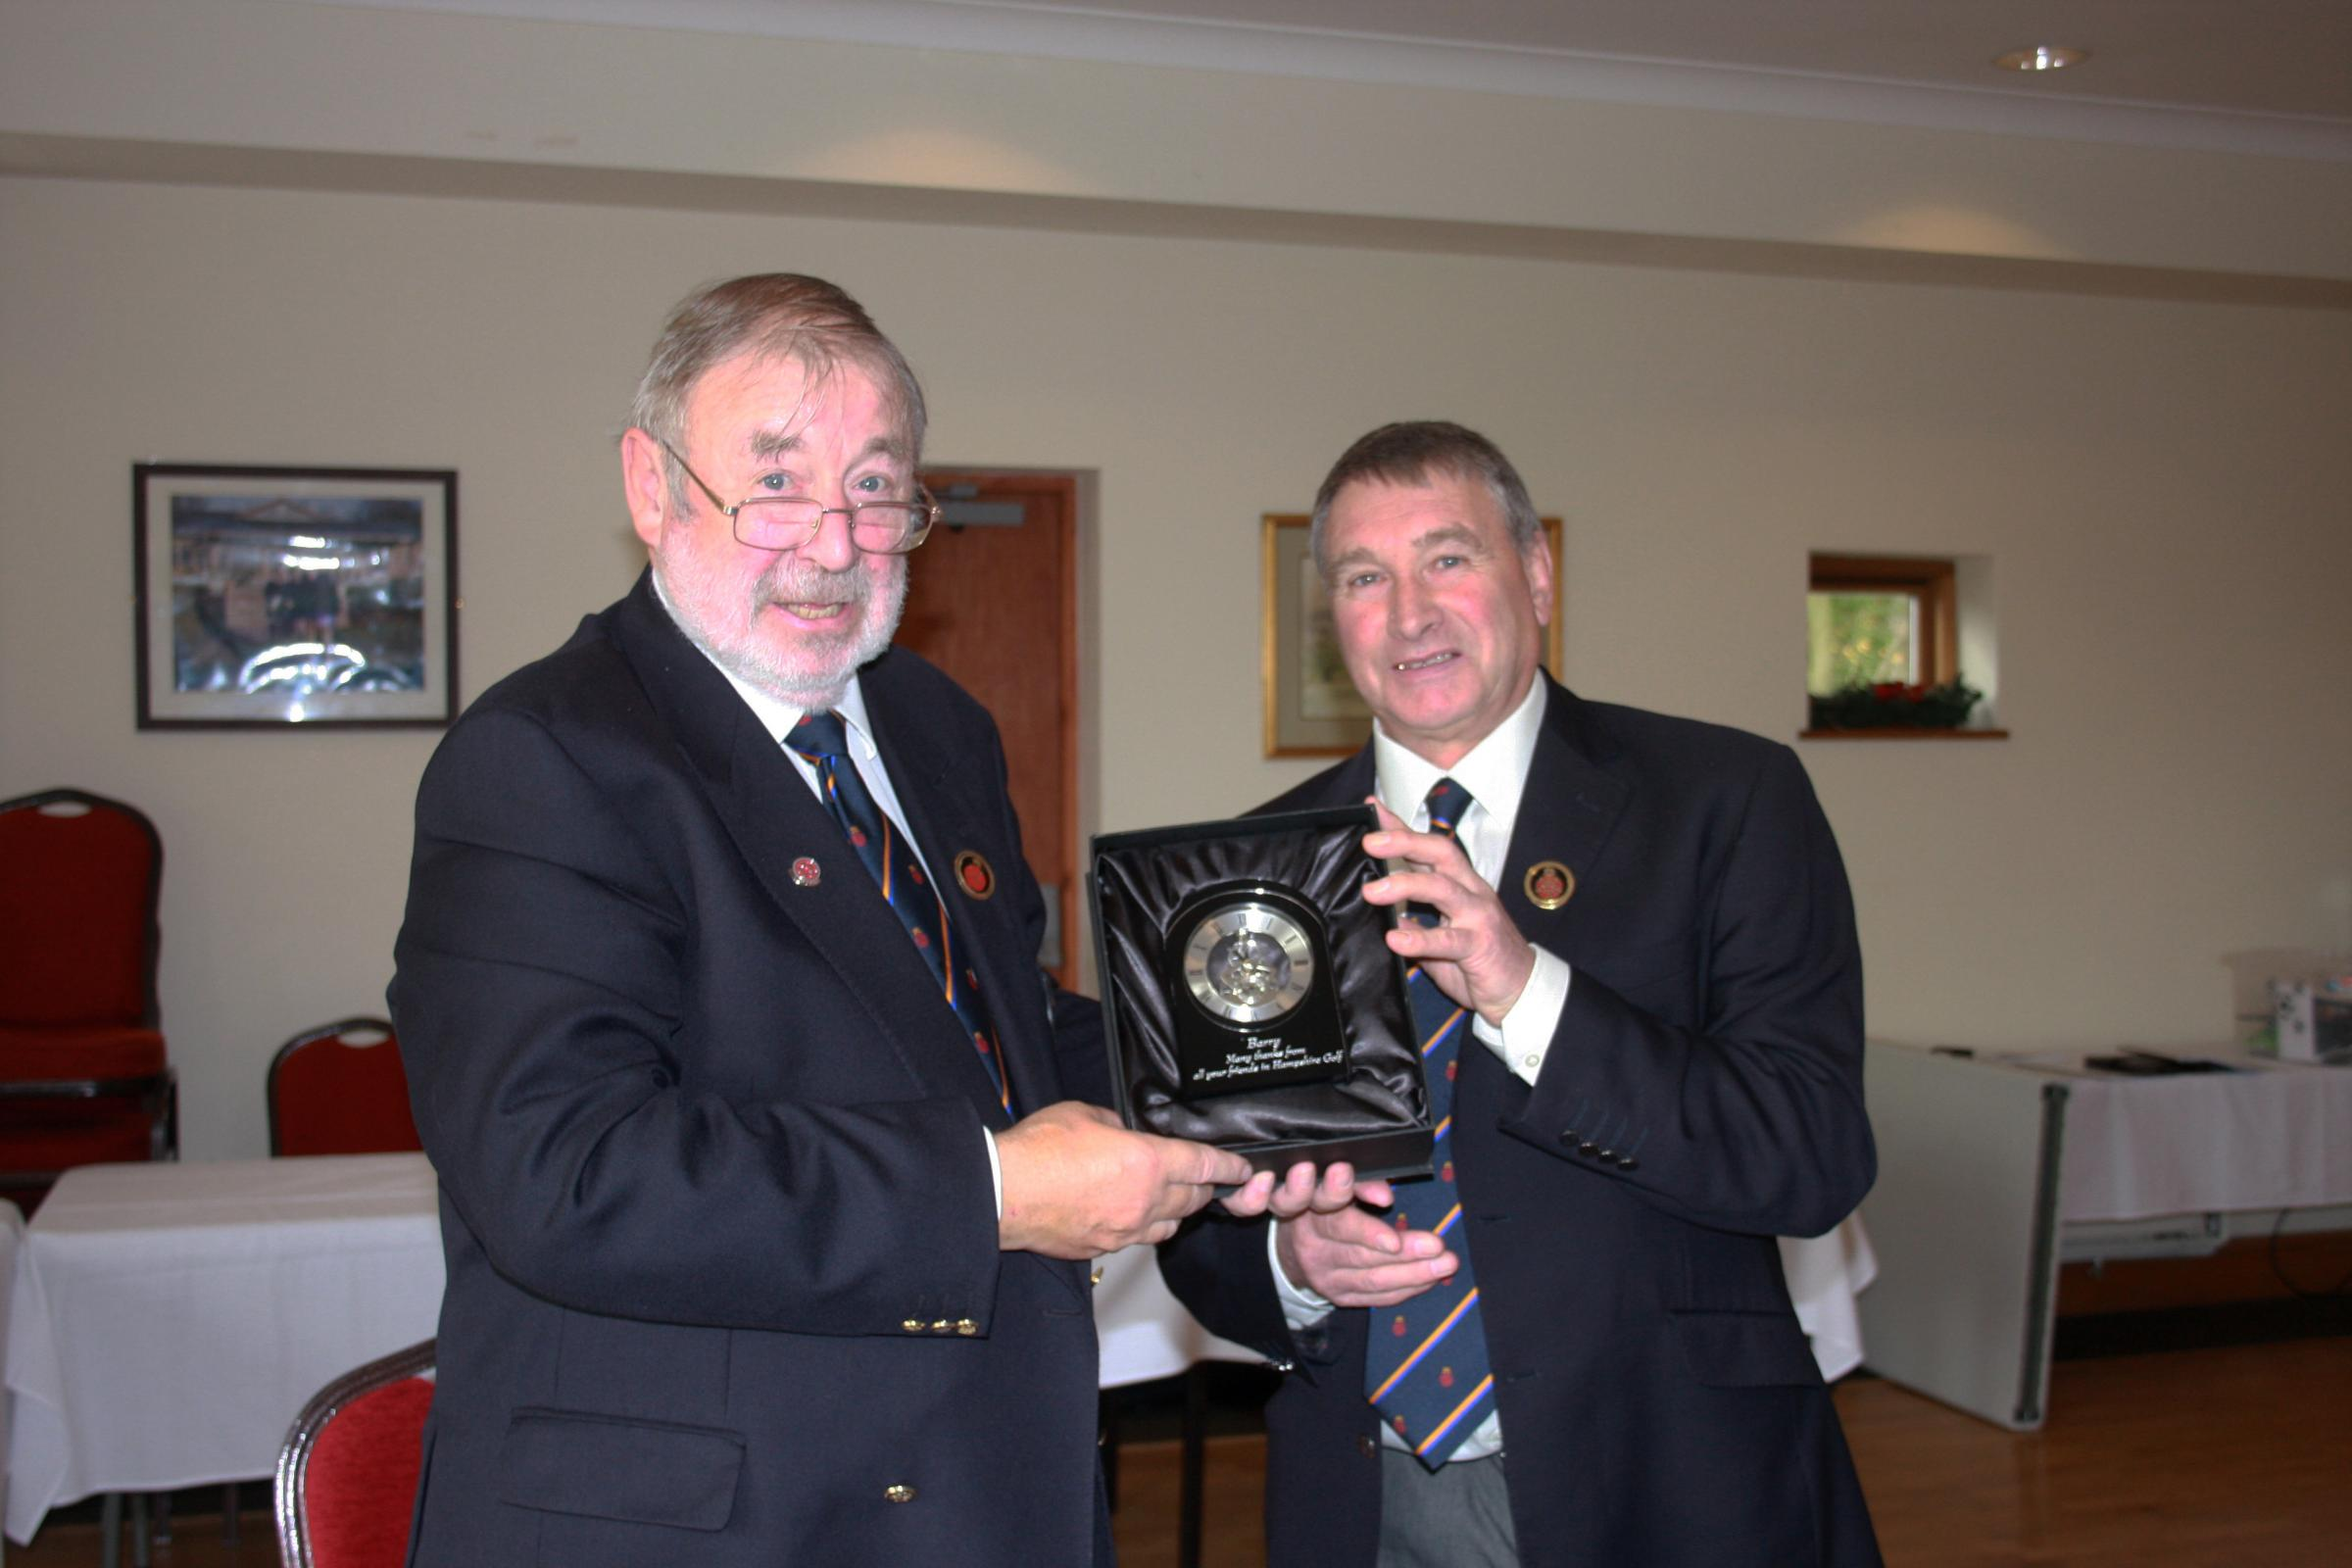 John Moore (Blackmoor GC) hands a leaving gift to immediate past president Barry Morgan (Liphook) at the Hampshire Golf Union AGM, at Basingstoke GC, on December 10, 2015.